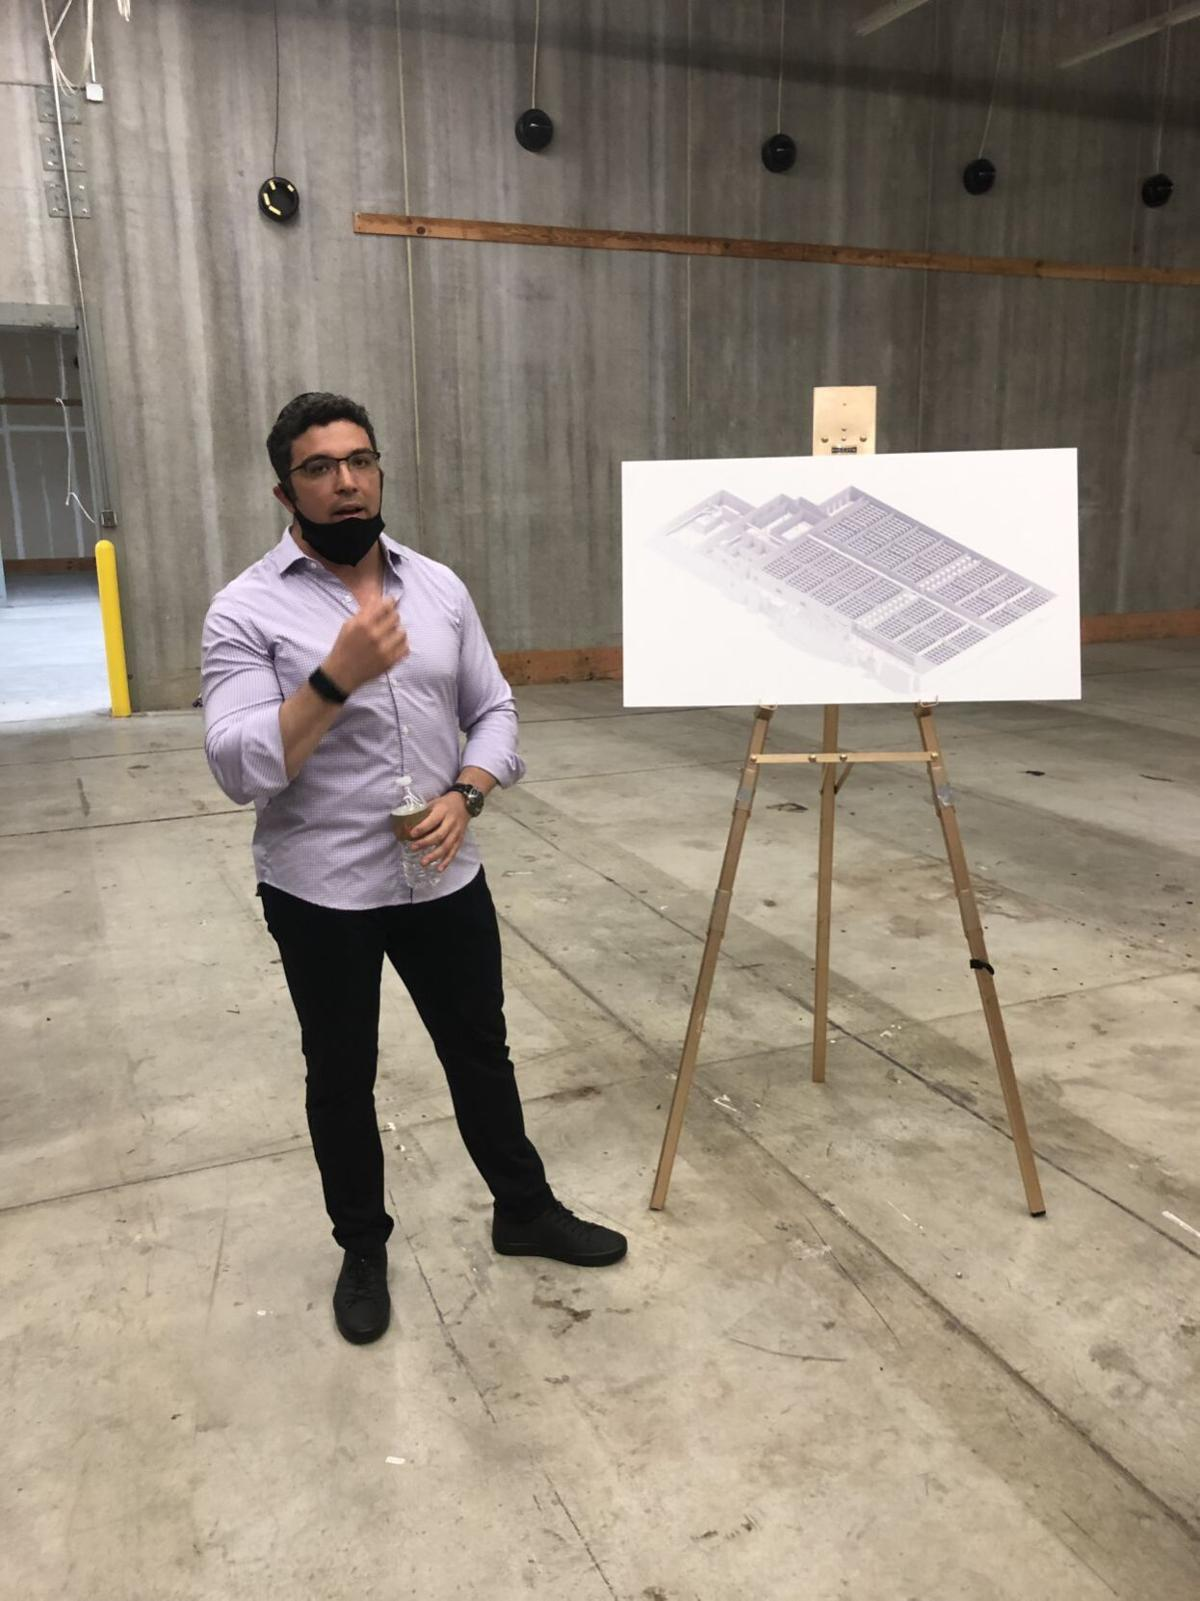 Company behind vertical farm in former Target hopes to roll out new technology nationwide